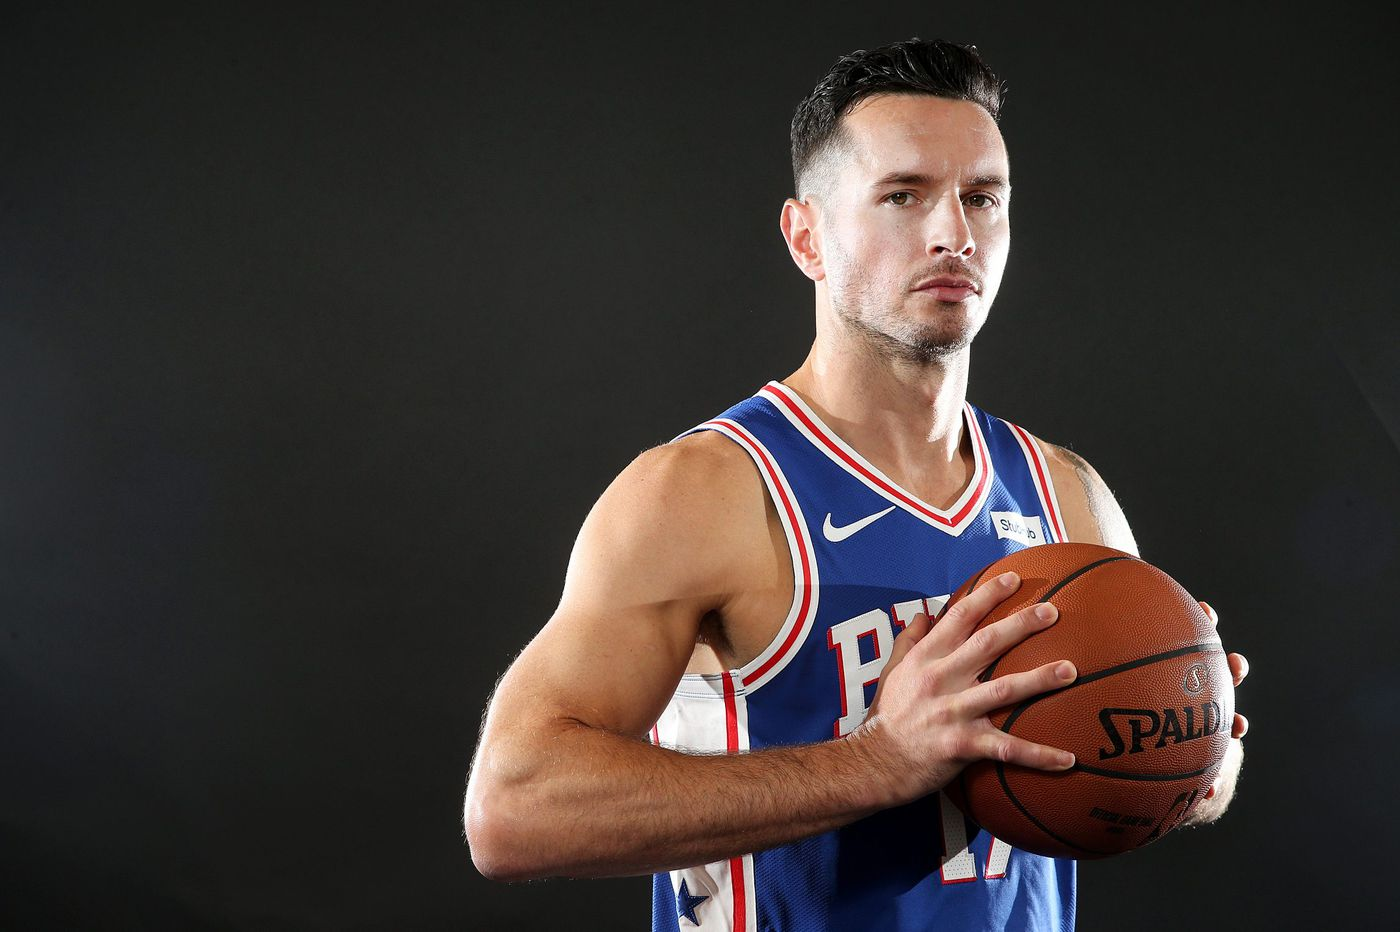 At 34, Sixers' JJ Redick is more than just a mentor to young players: 'Guys flock to him because the type of person he is'